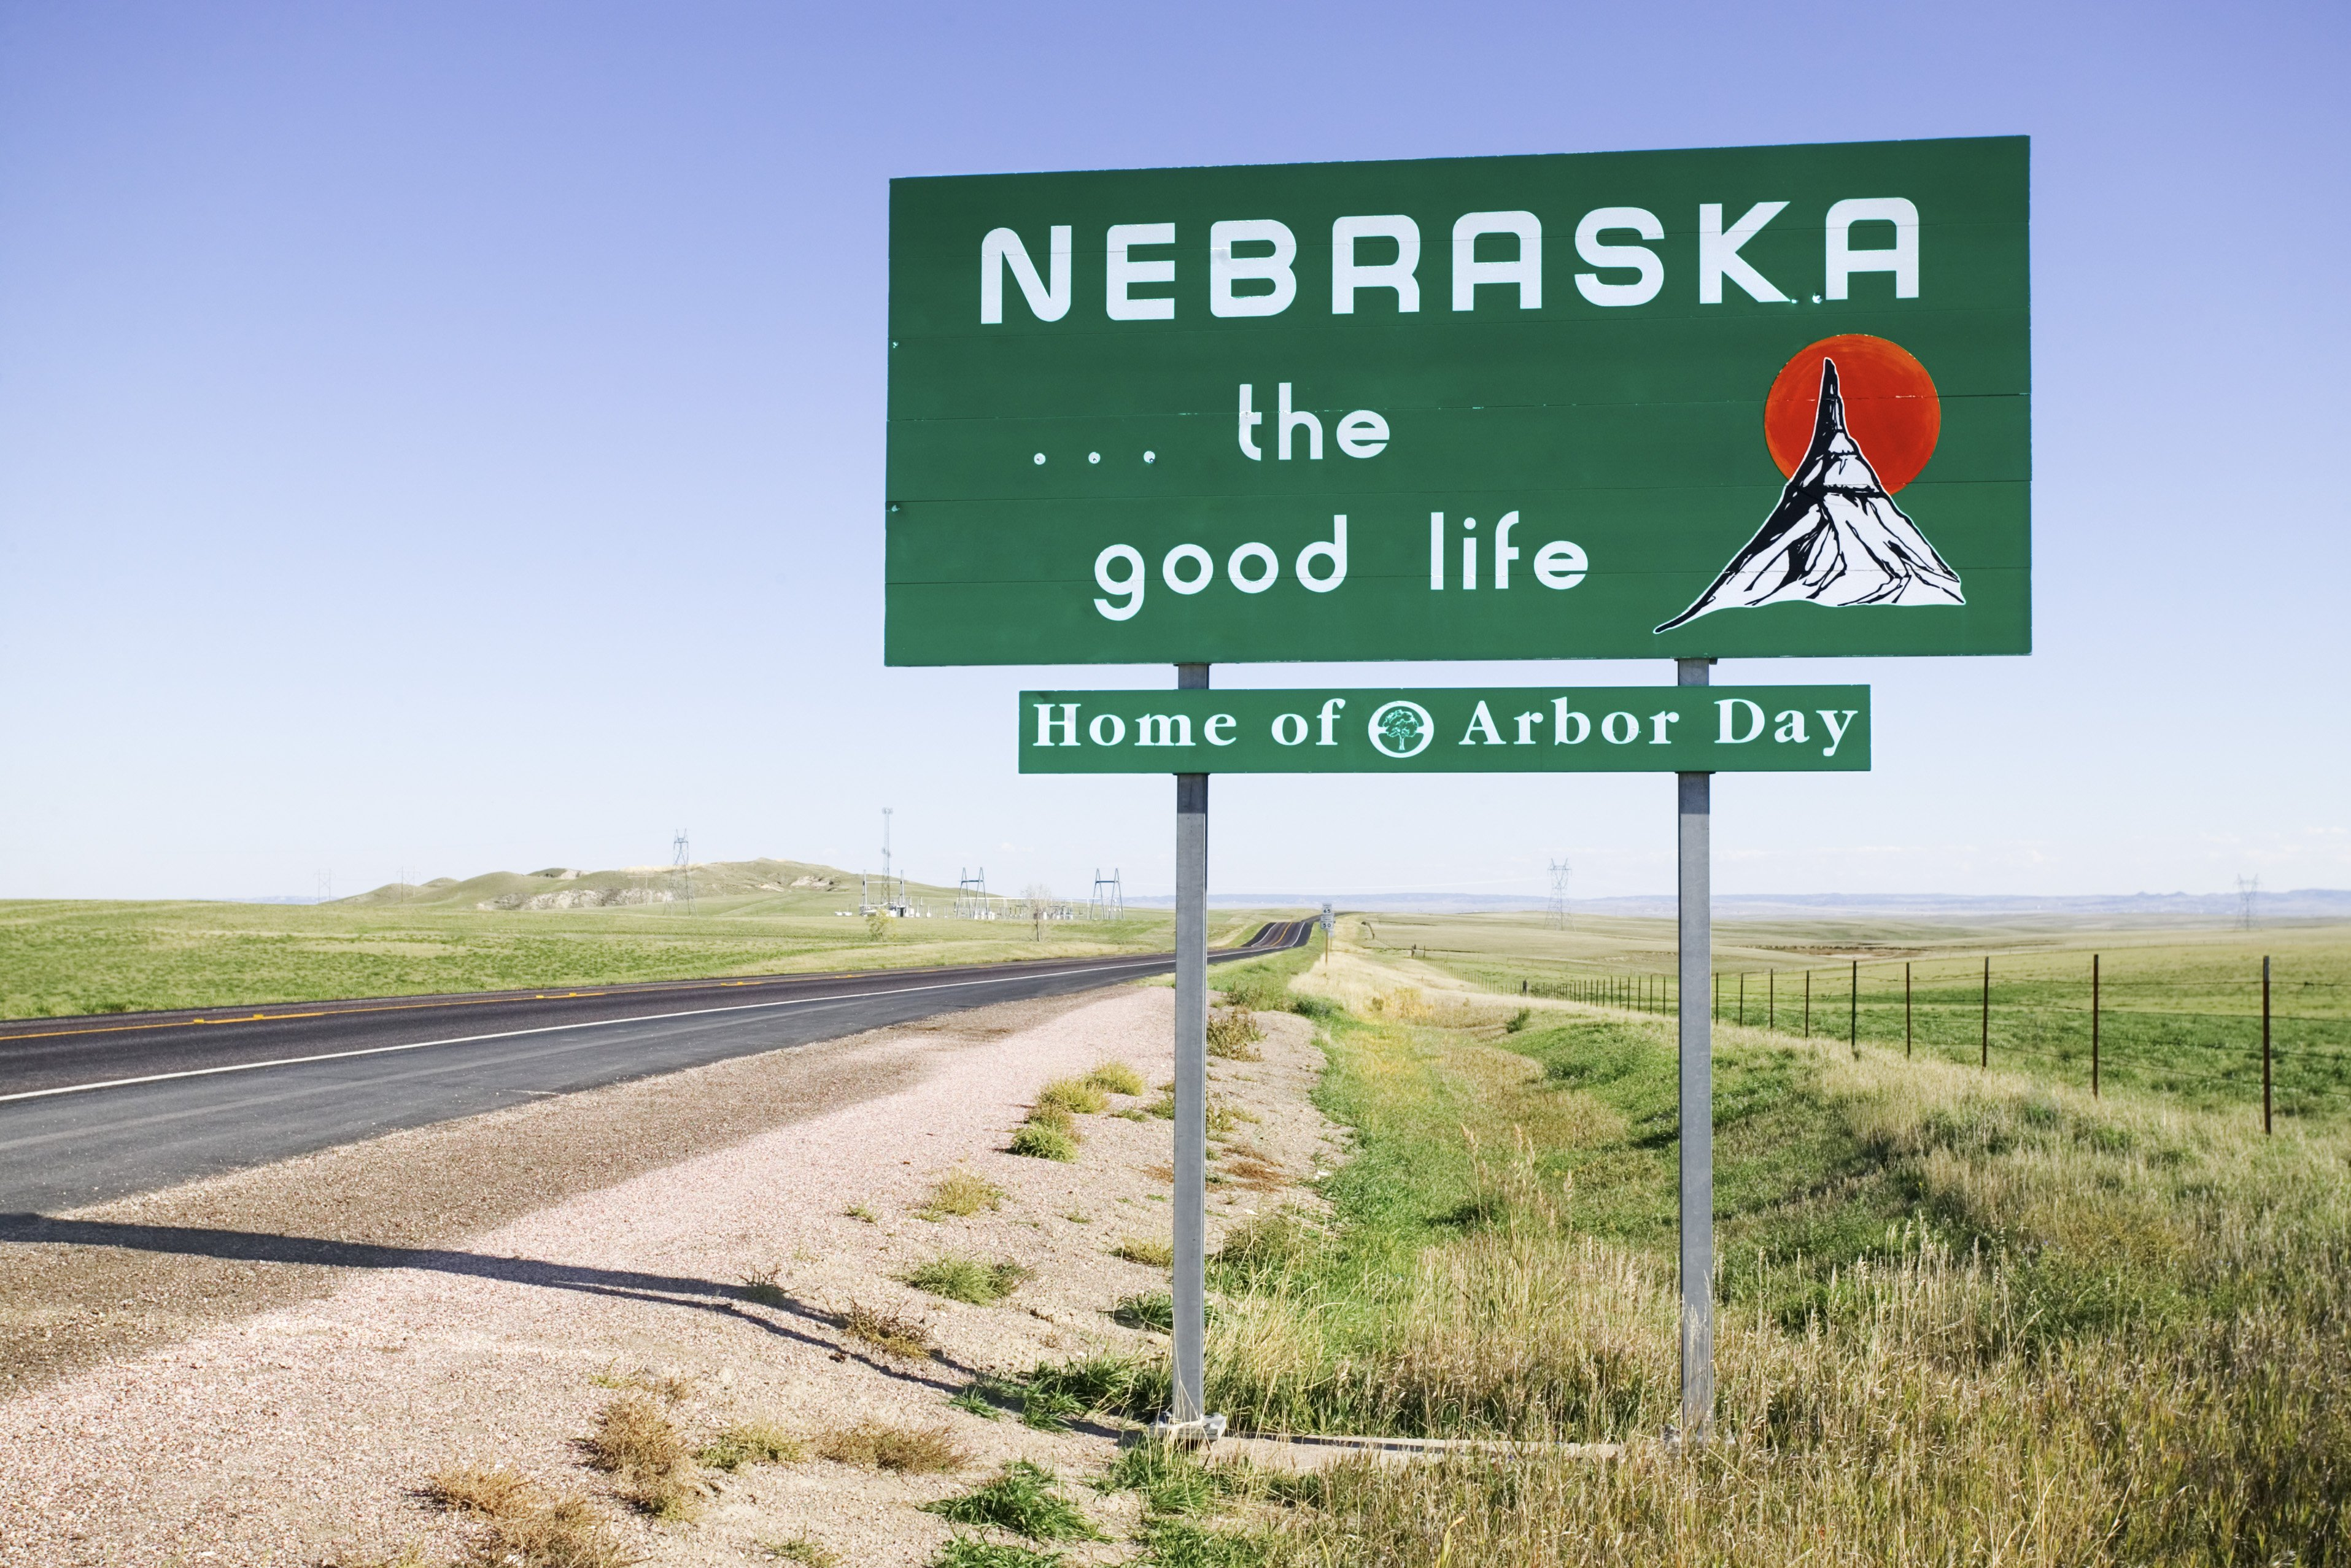 Slide 28 of 51: Nebraska is the birthplace of the Rueben sandwich consisting of corned beef, swiss cheese, Russian dressing, and sauerkraut.